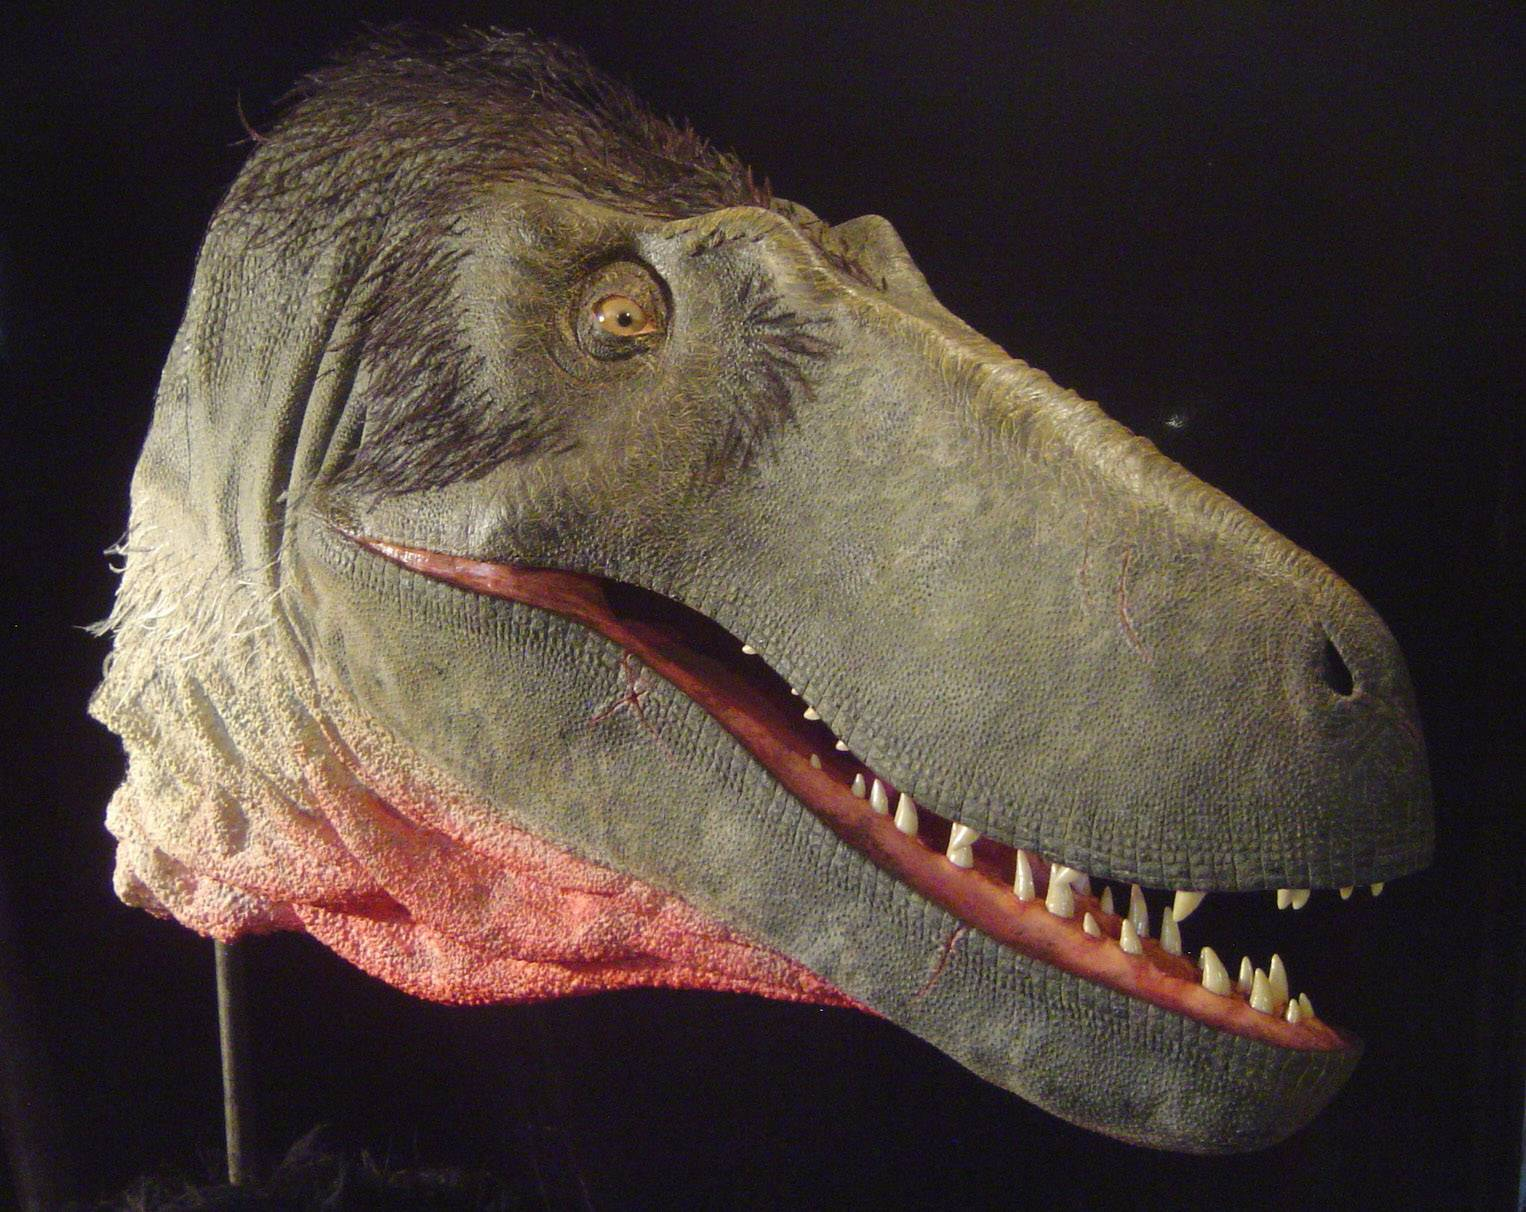 Life-size dinosaur in the works for Lake County museum